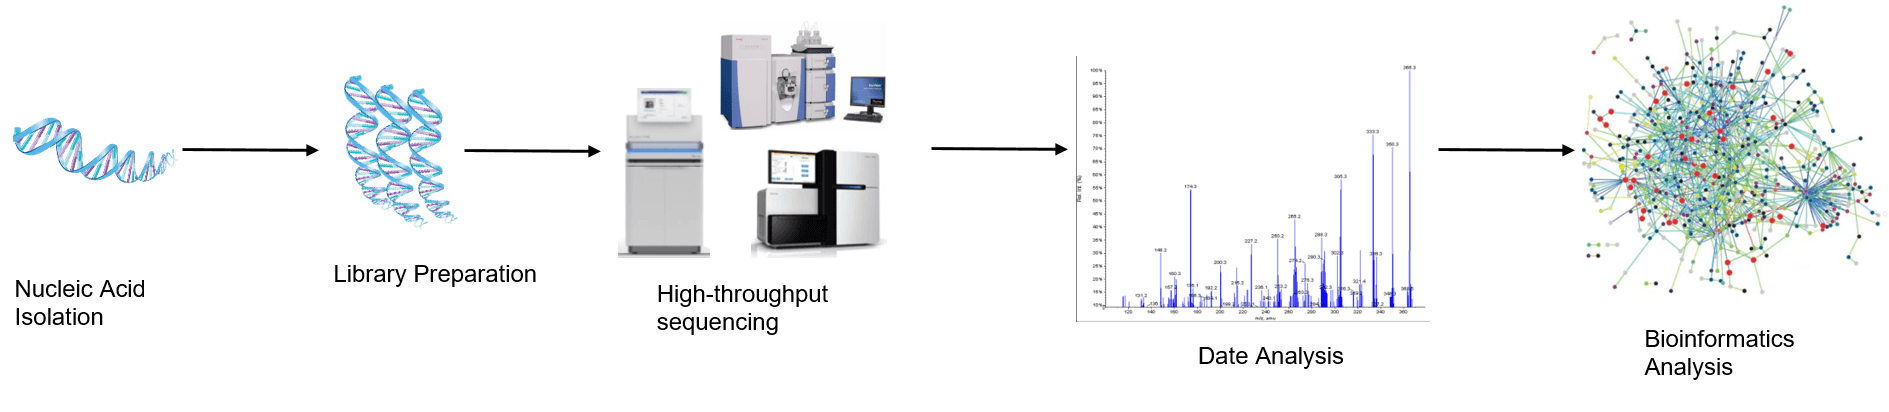 The high-throughput sequencing analysis process